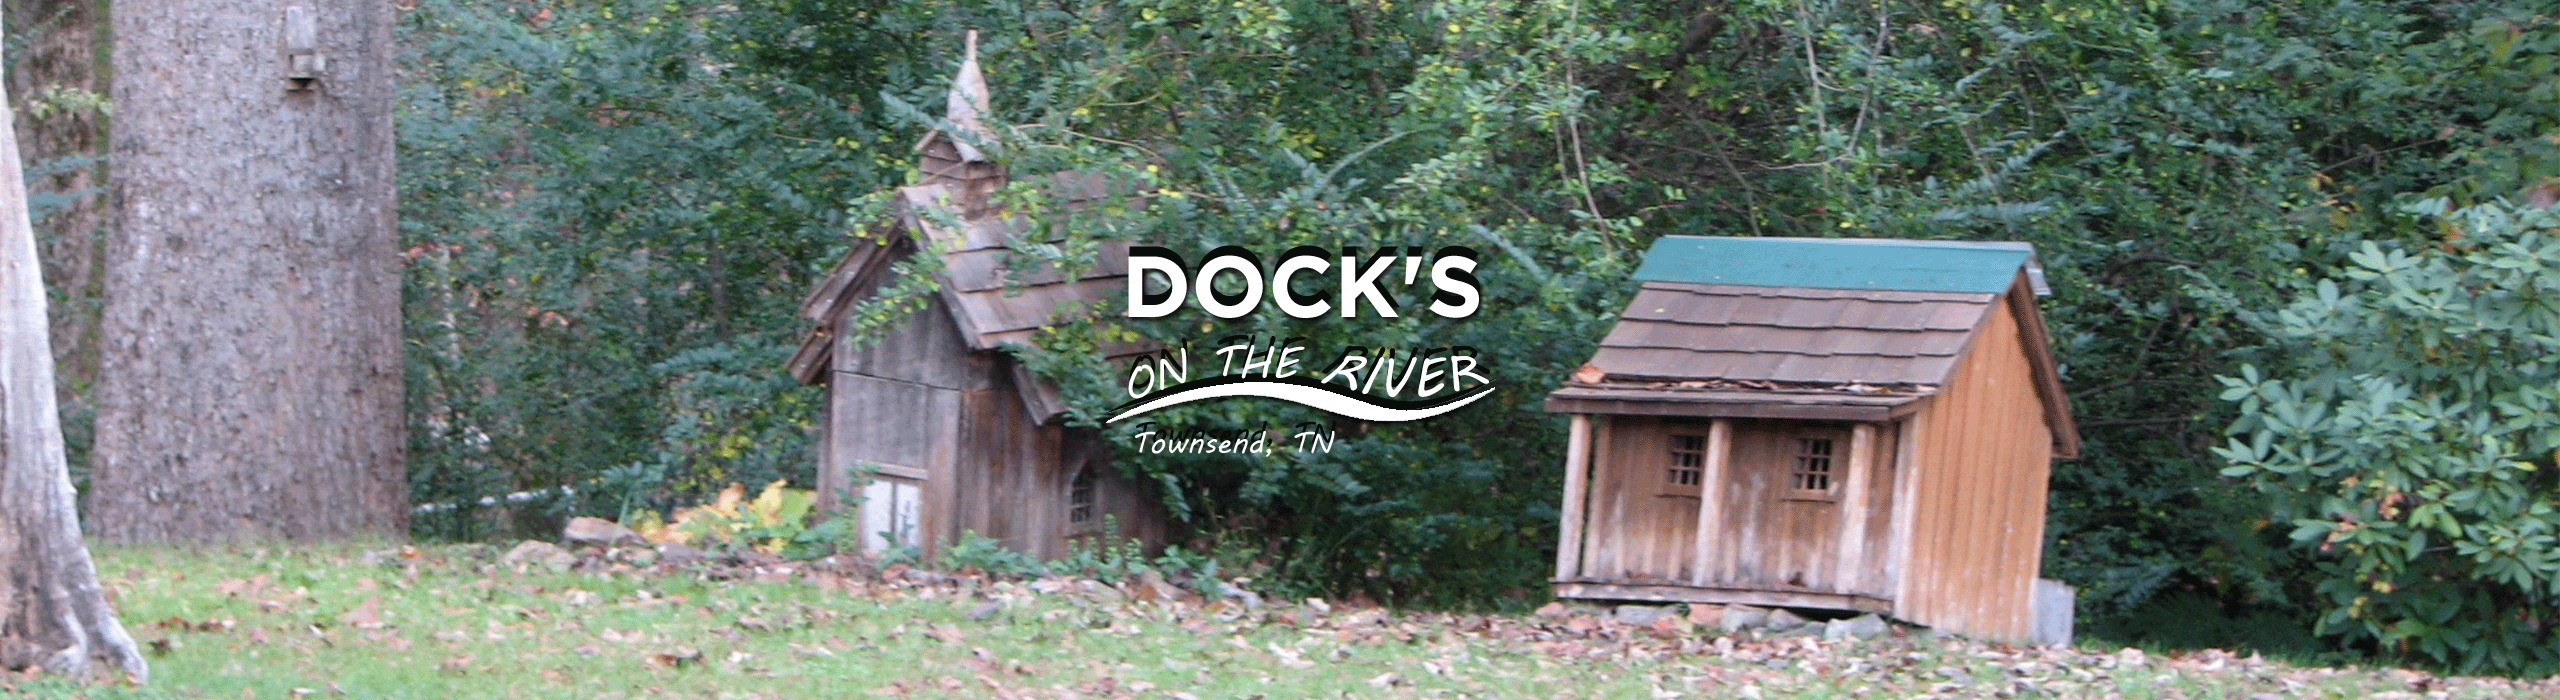 Dock's On The River Cabins and Motel Townsend TN